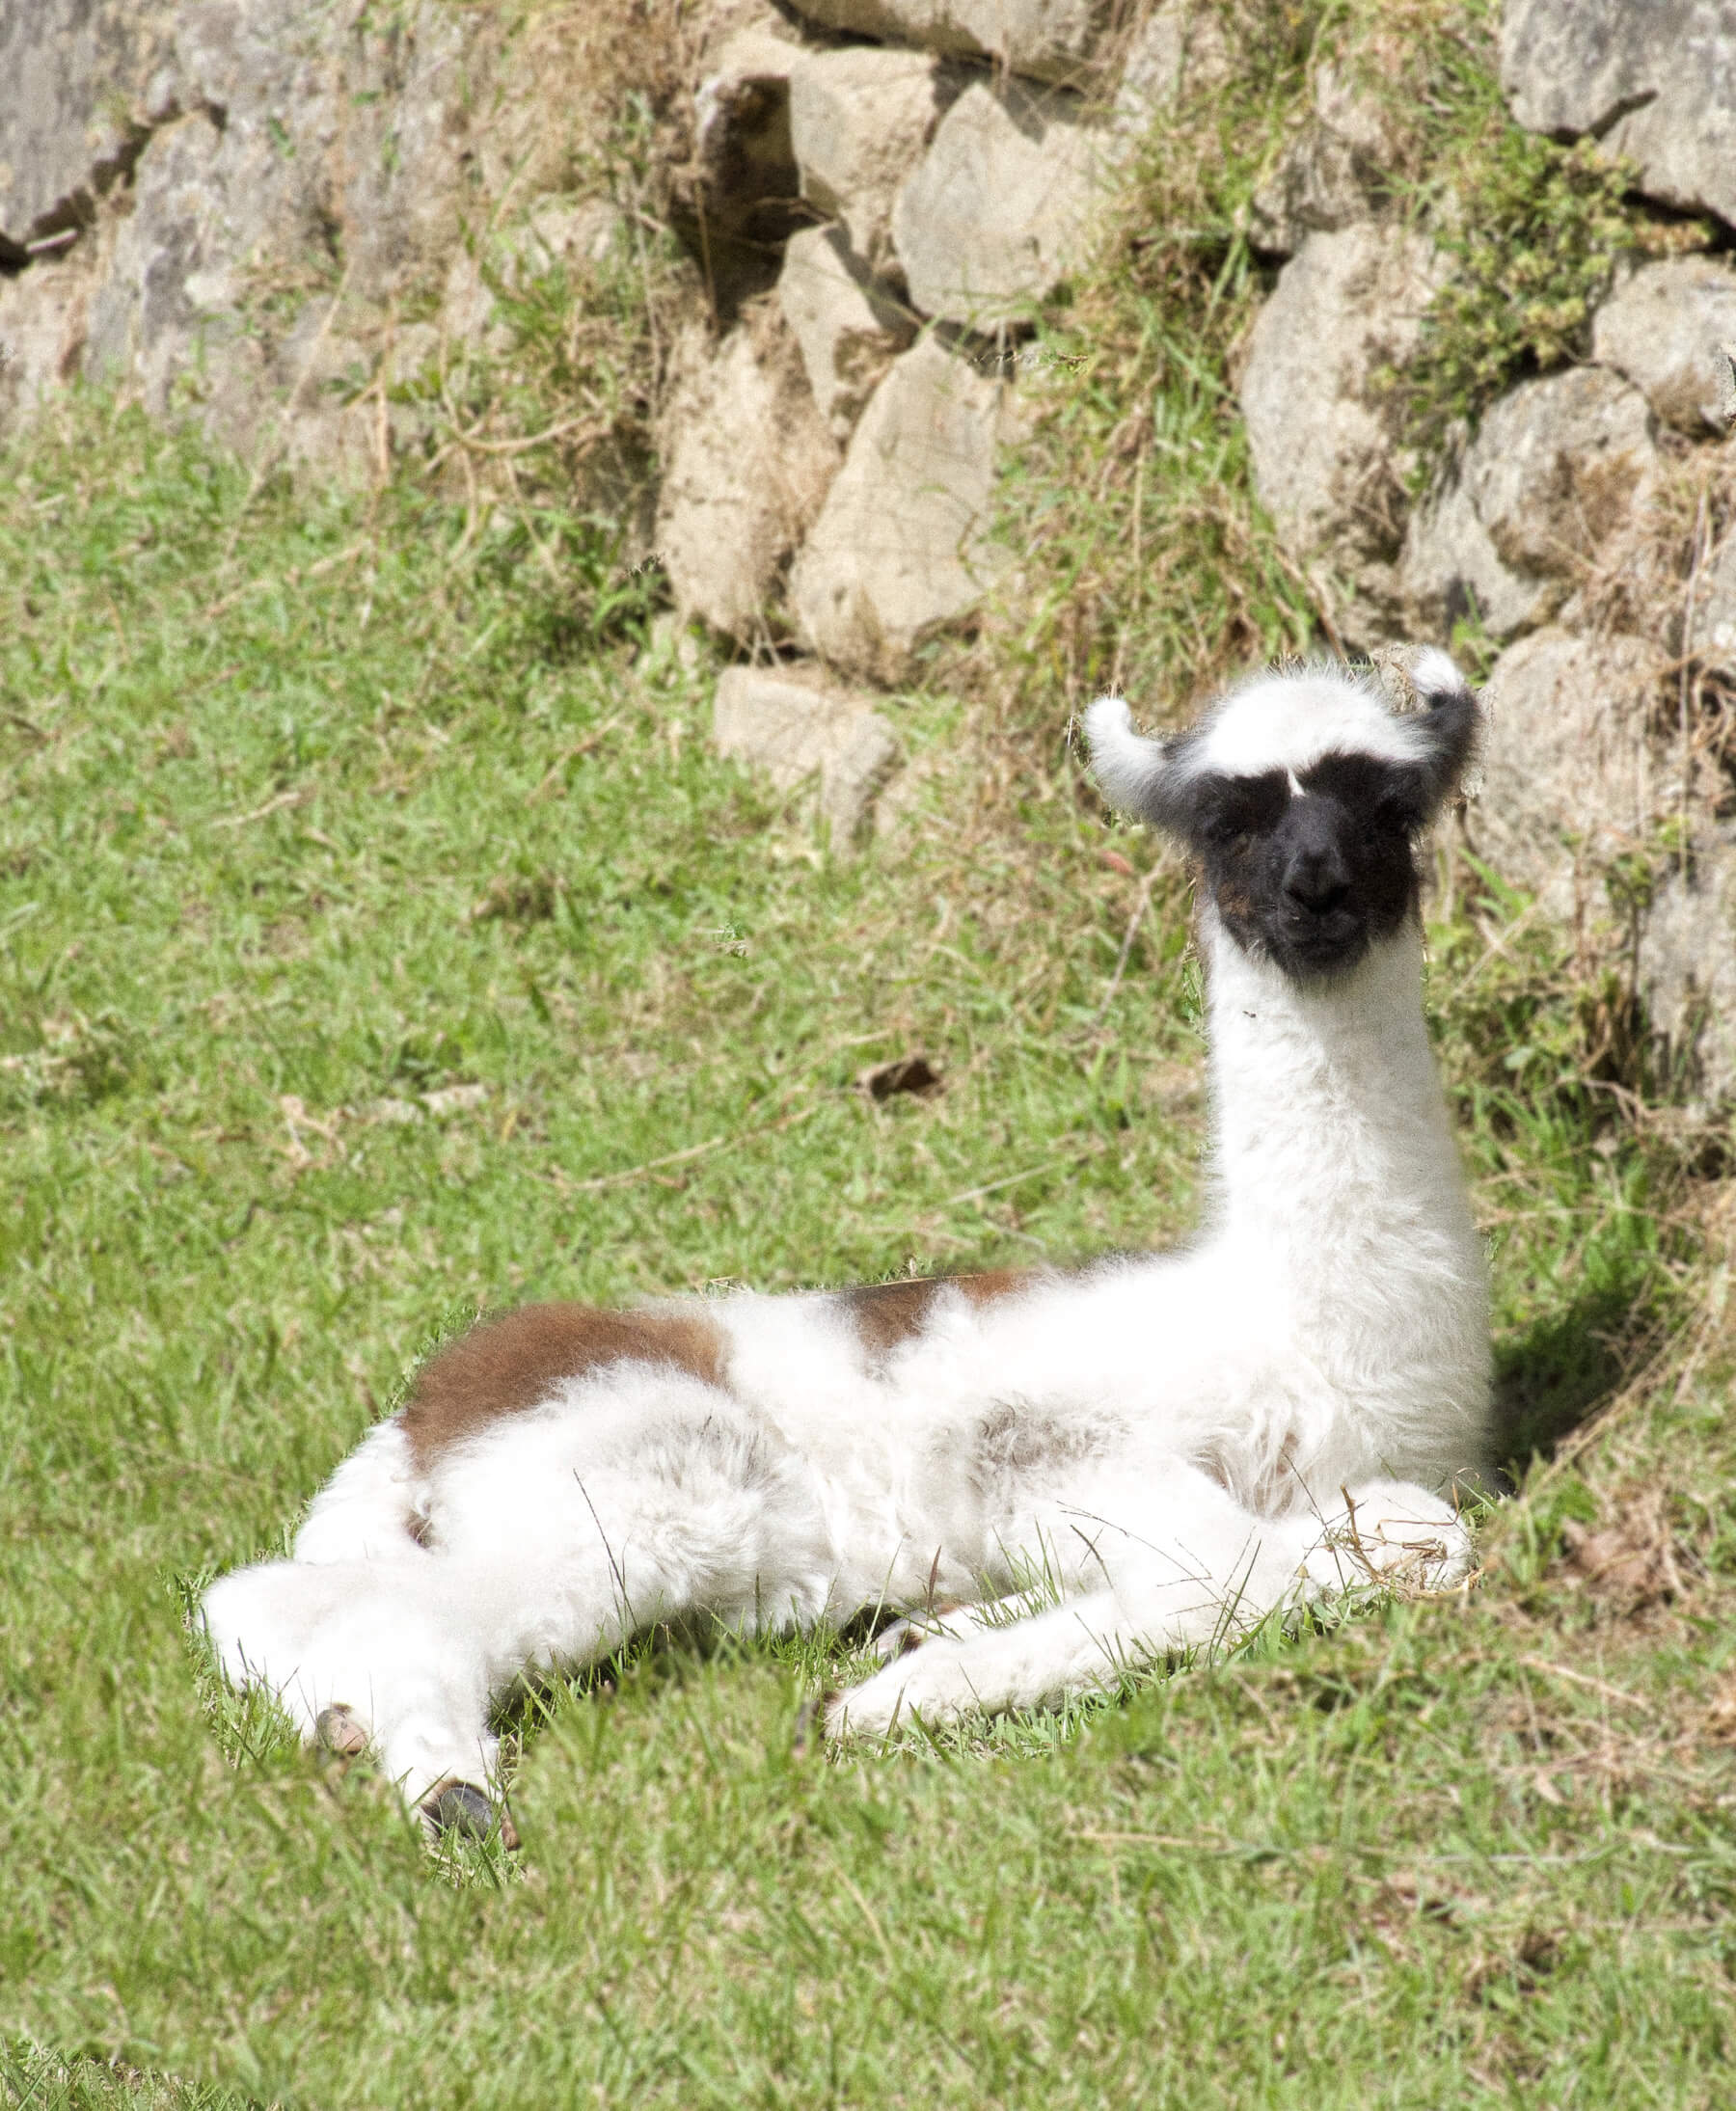 A white baby llama with a black face and brown patches on its back - looking at the camera while eating some grass and relaxing